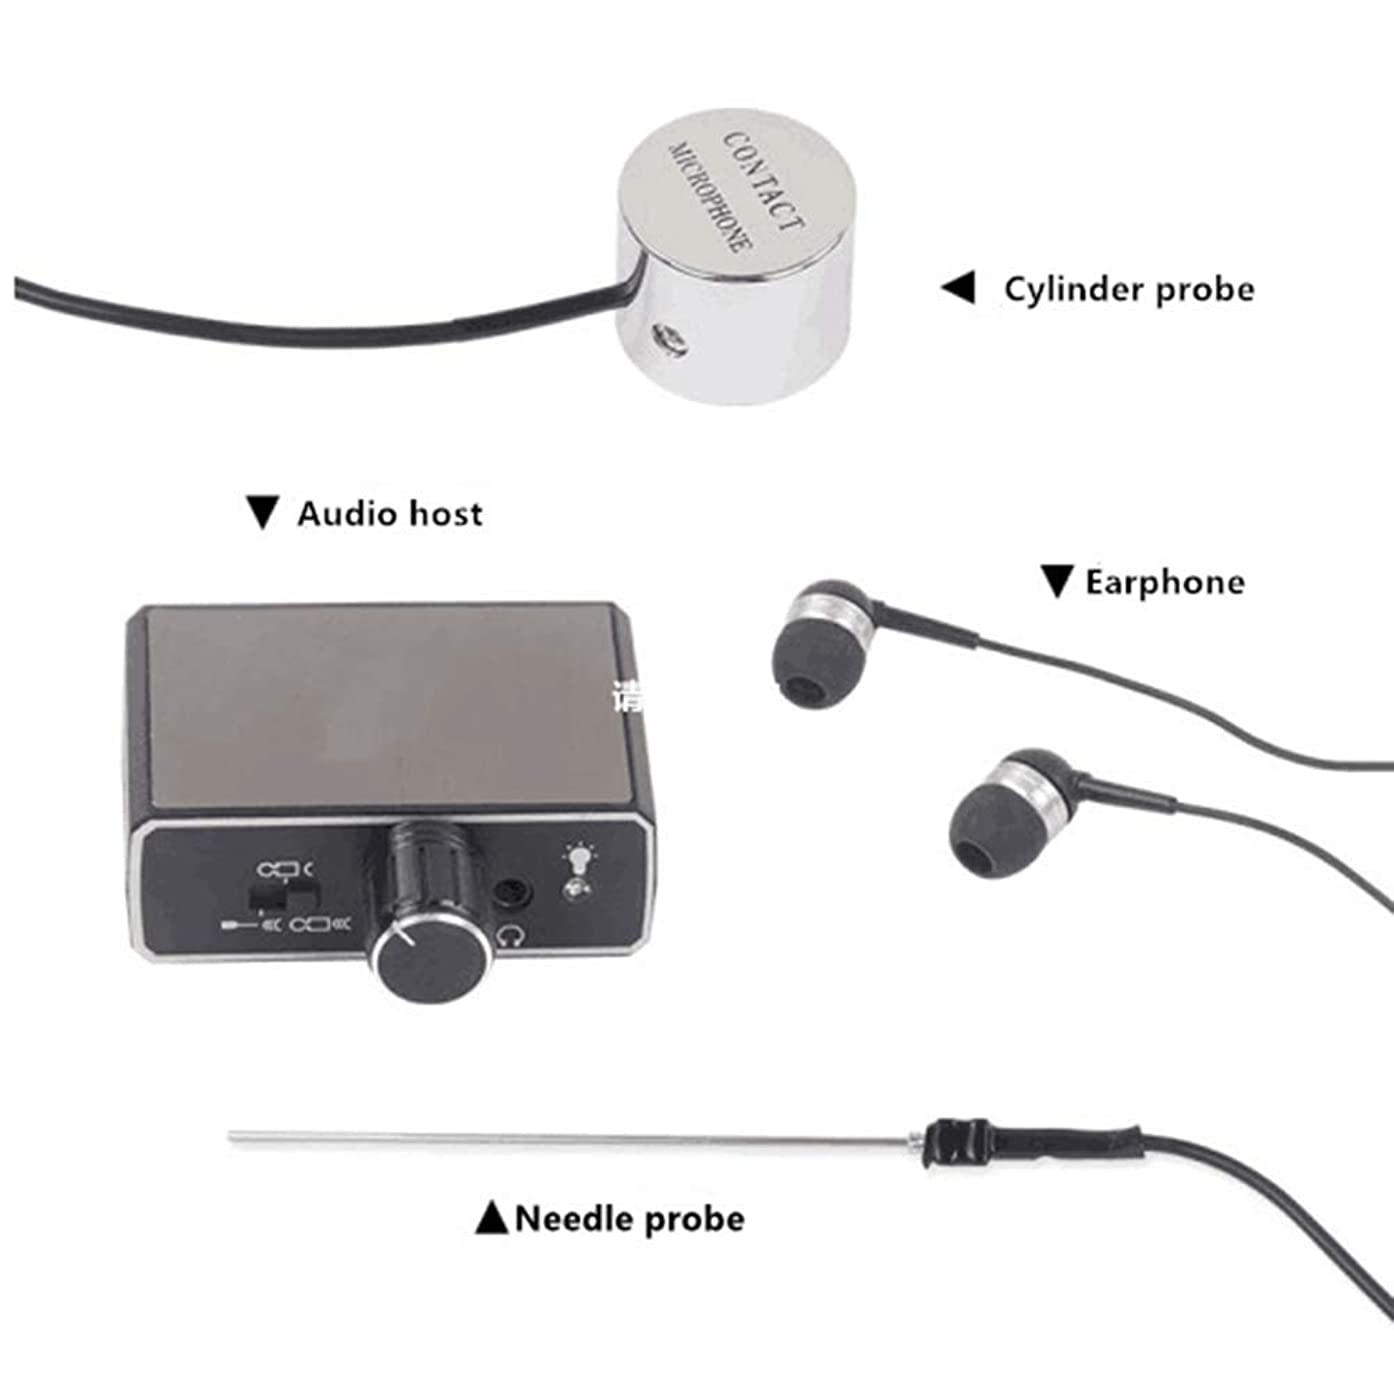 Spy Tec Highly Sensitive Audio Wall Probe with Amplification up to 20000x New Super Sensitive Listen Thru-Wall Contact/Probe Microphone Amplifier System